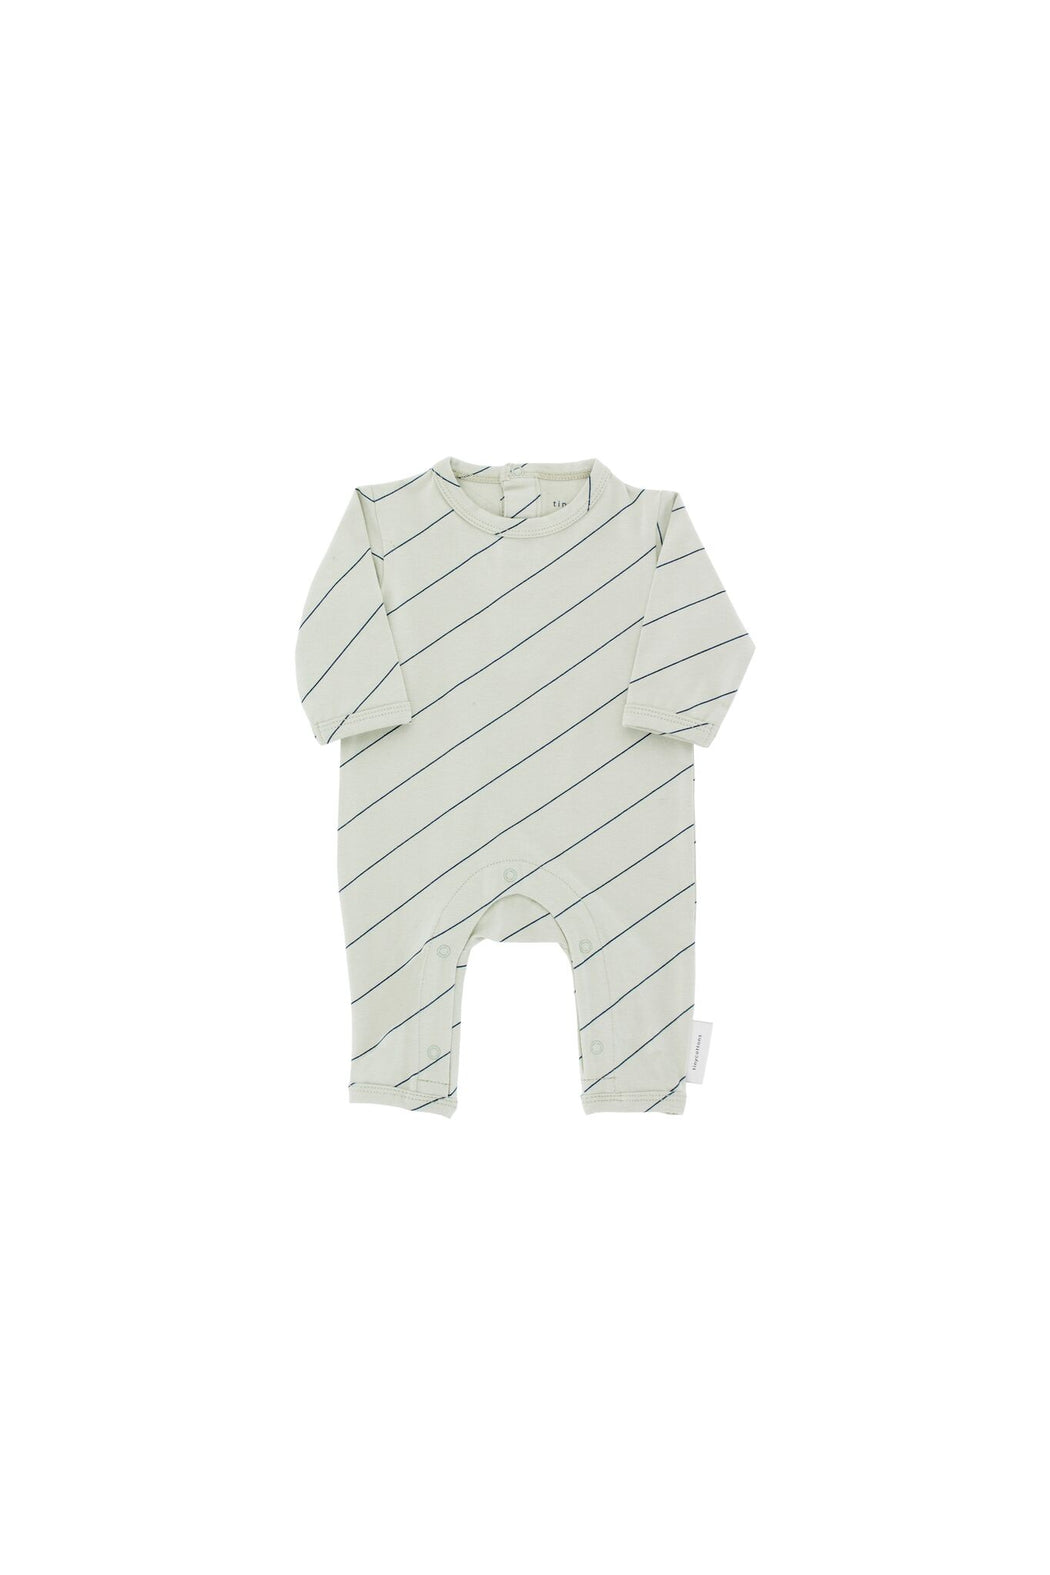 Diagonal Stripes L/S One-Piece